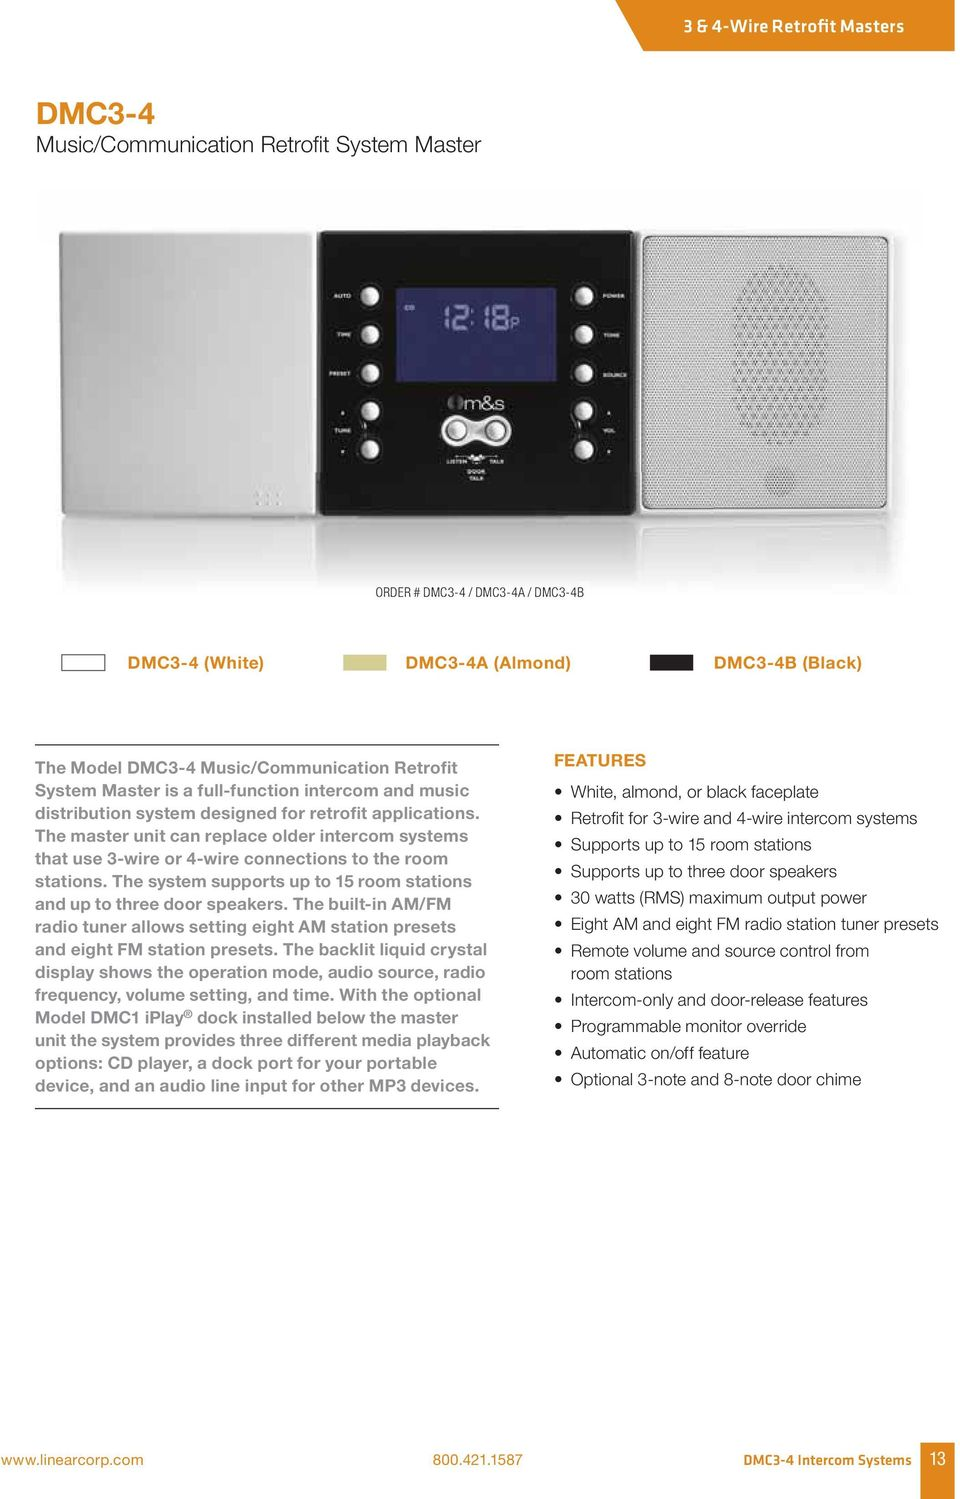 The master unit can replace older intercom systems that use 3-wire or 4-wire connections to the room stations. The system supports up to 15 room stations and up to three door speakers.